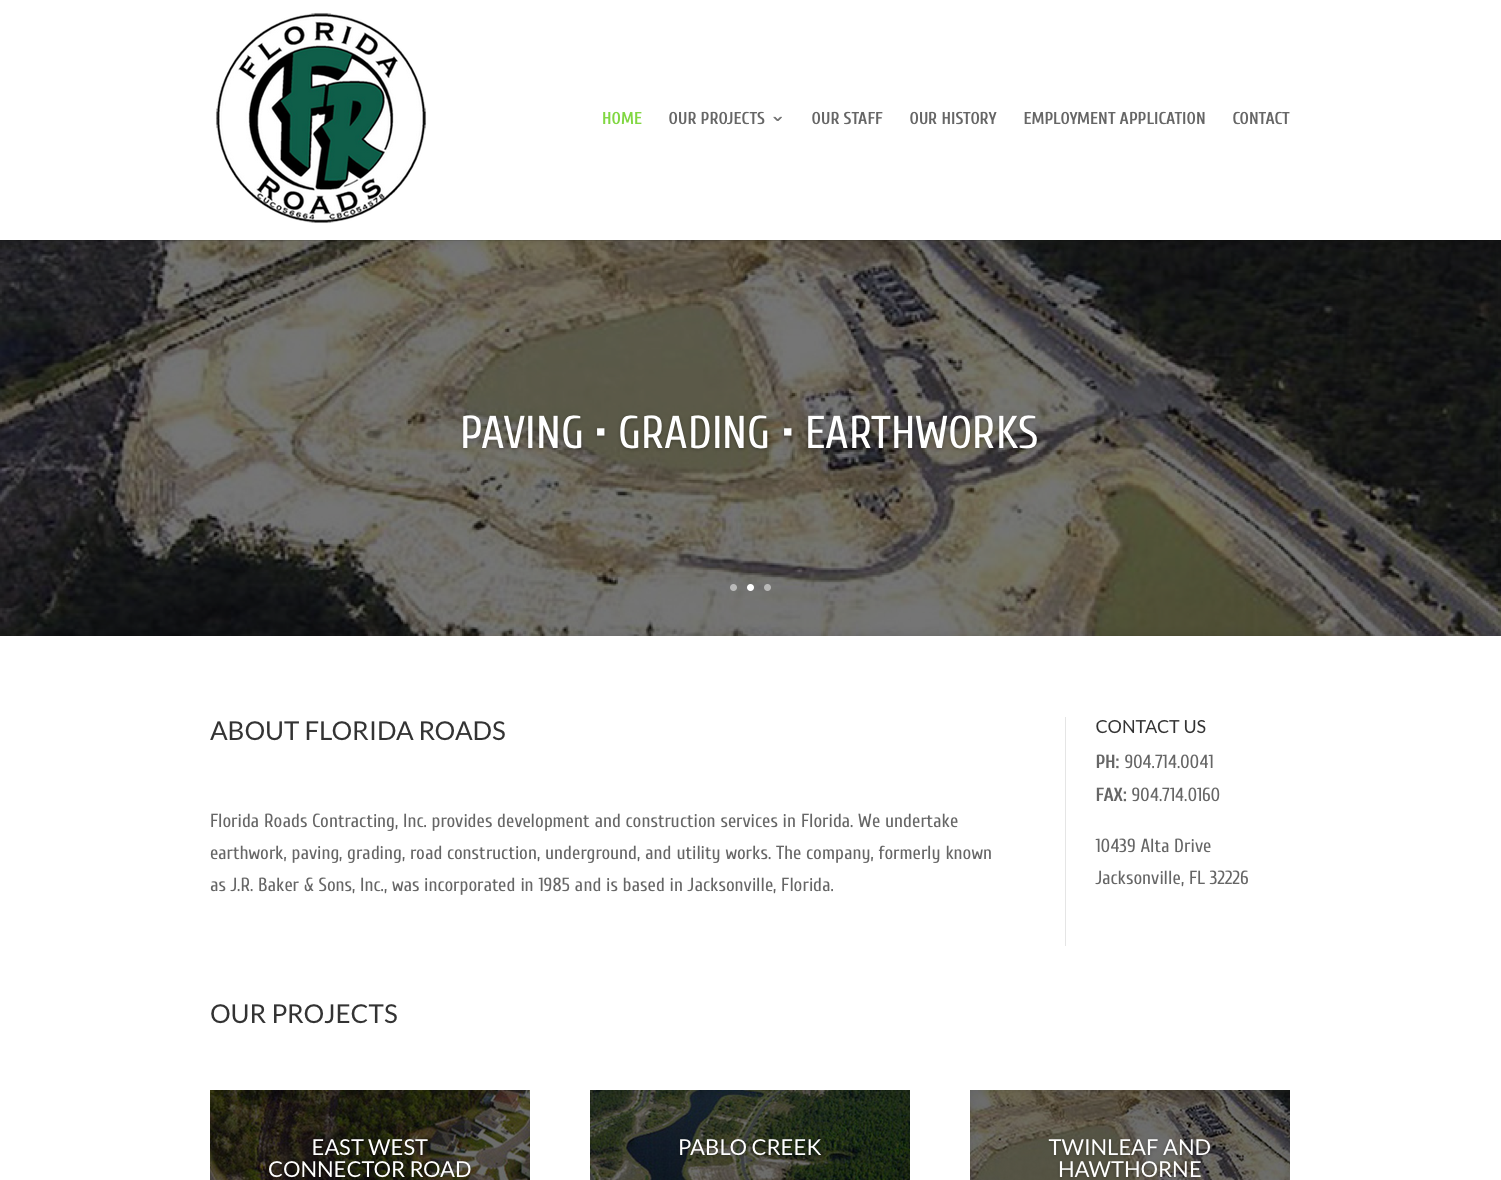 Florida Roads Contracting LLC